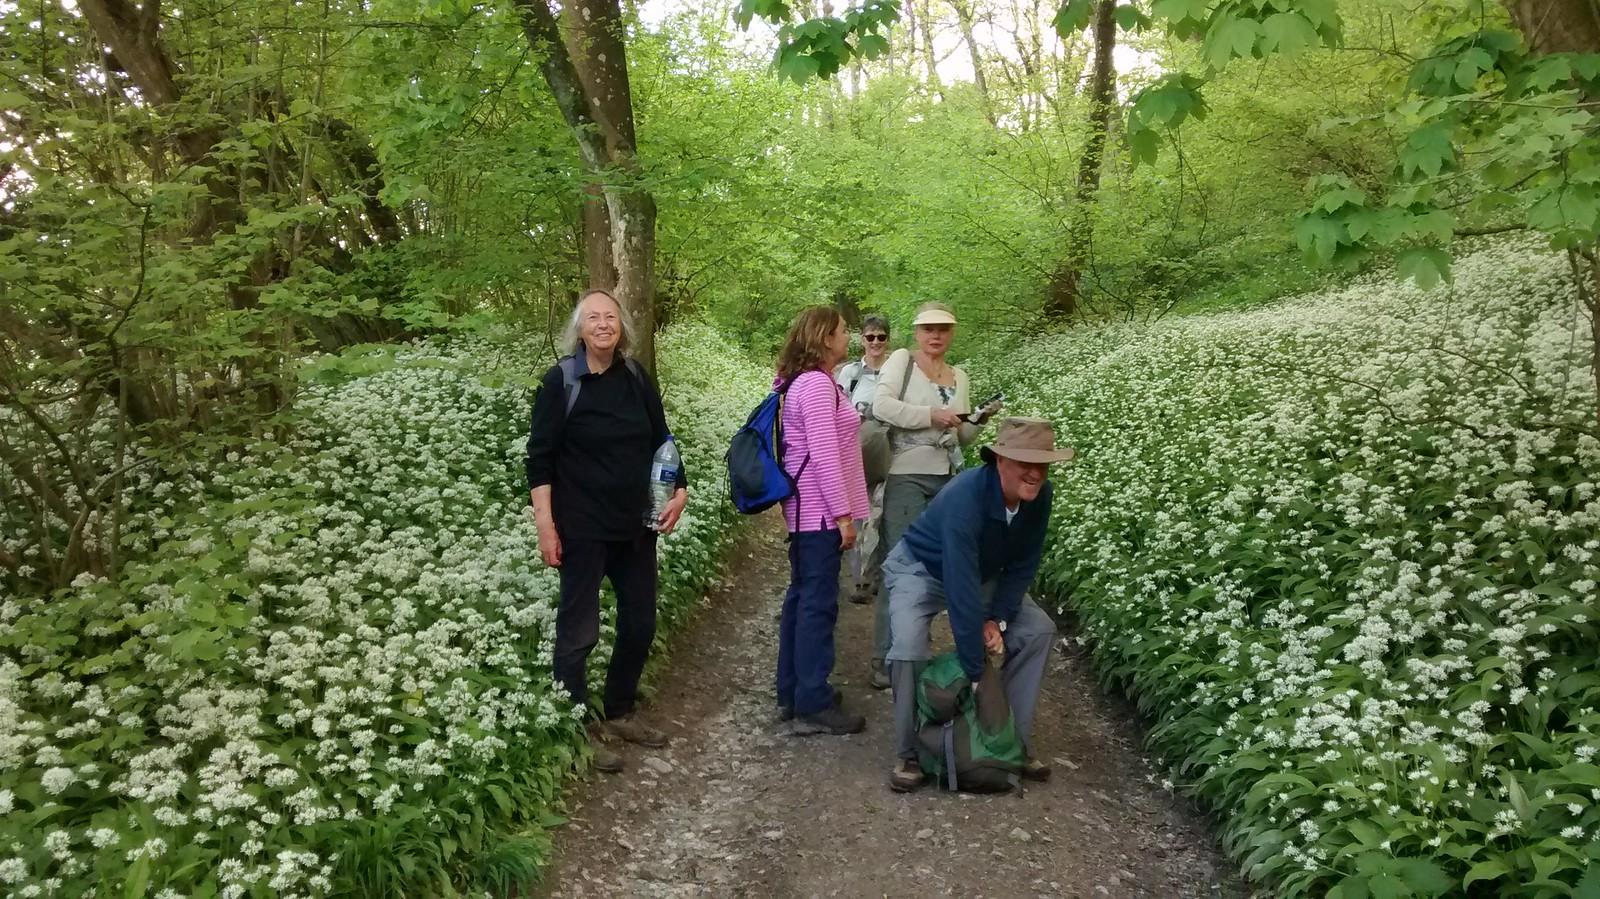 Wild Garlic and walkers